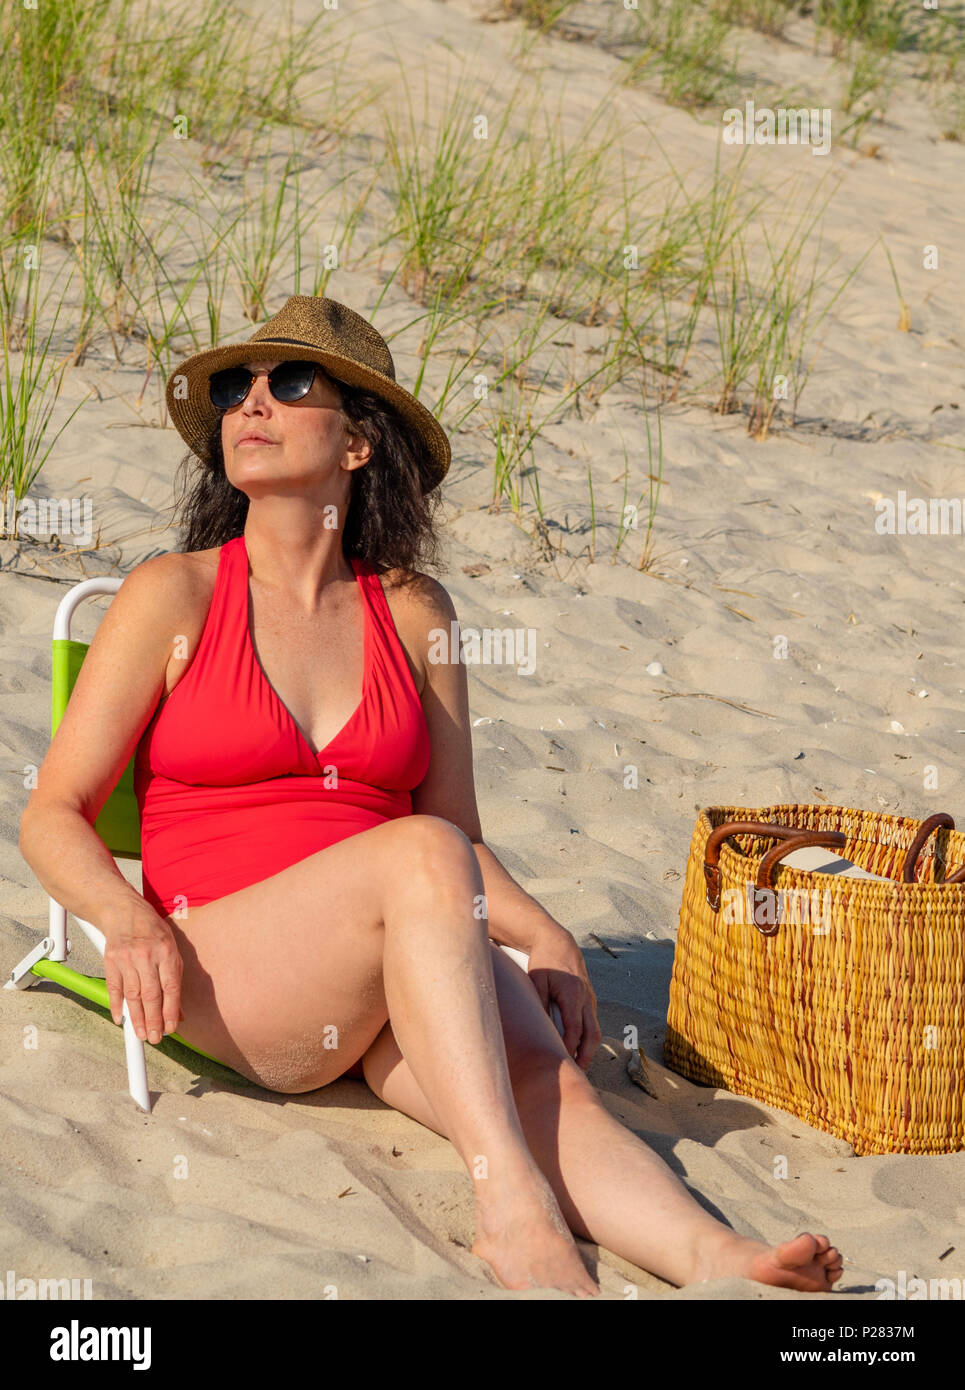 Woman in bathing suit relaxing on beach. - Stock Image